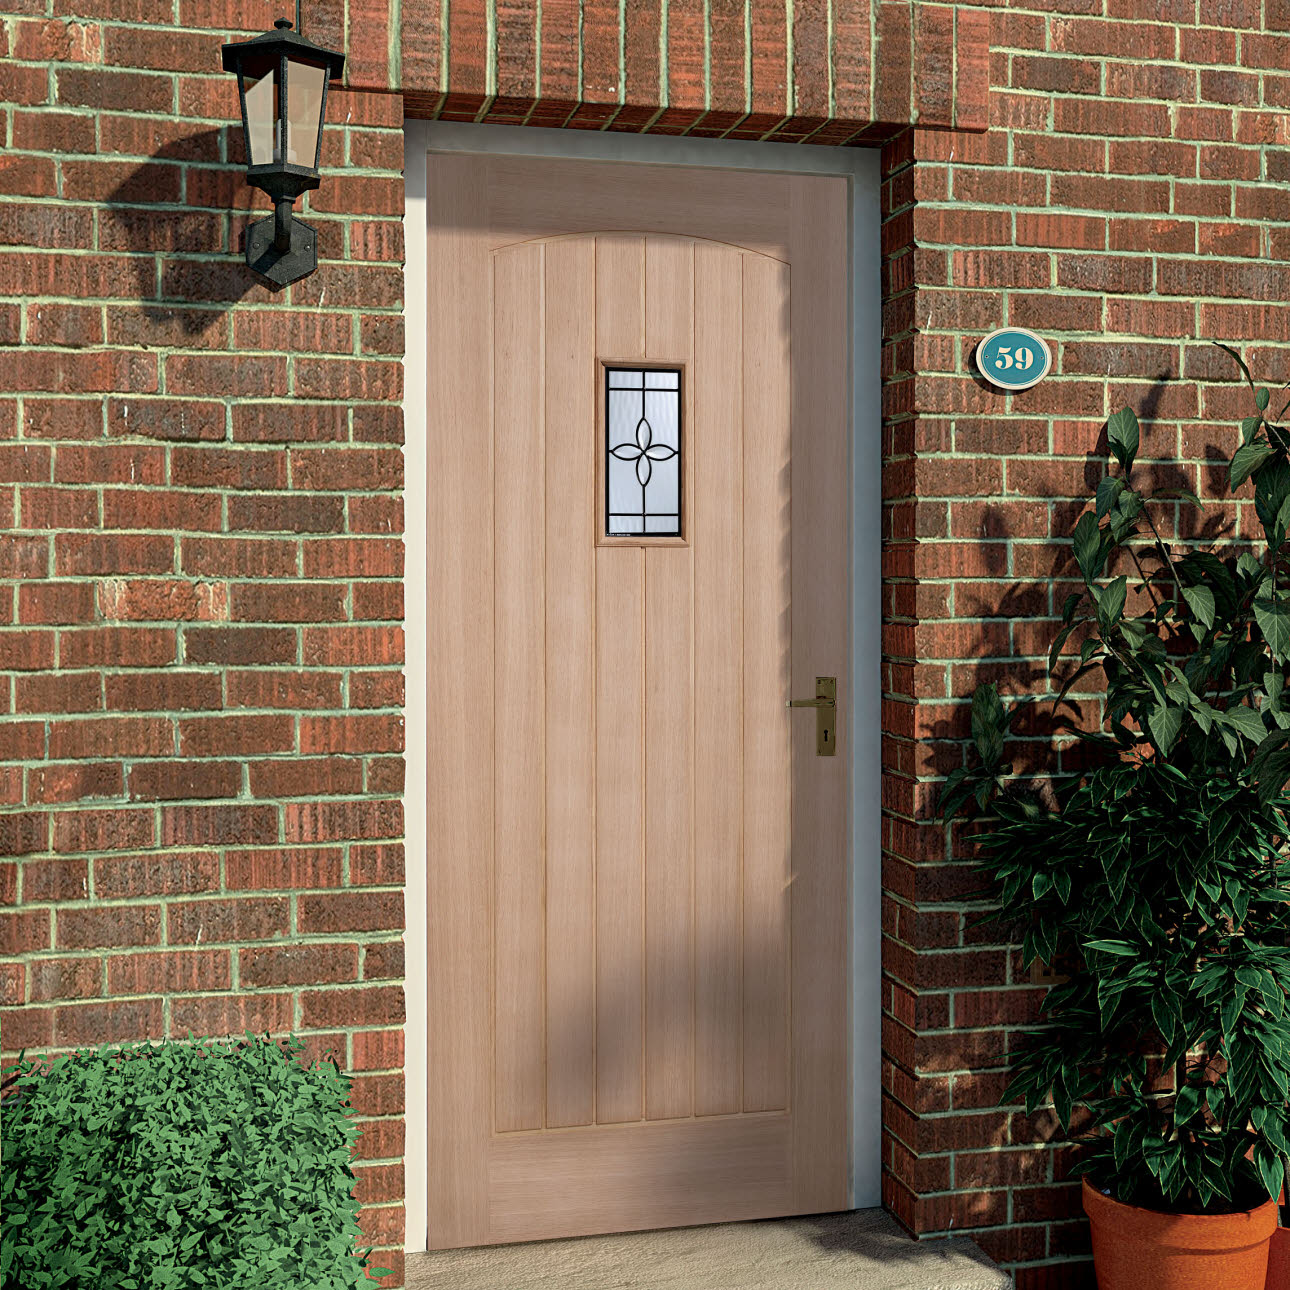 Wood external door, fitted in red brick house